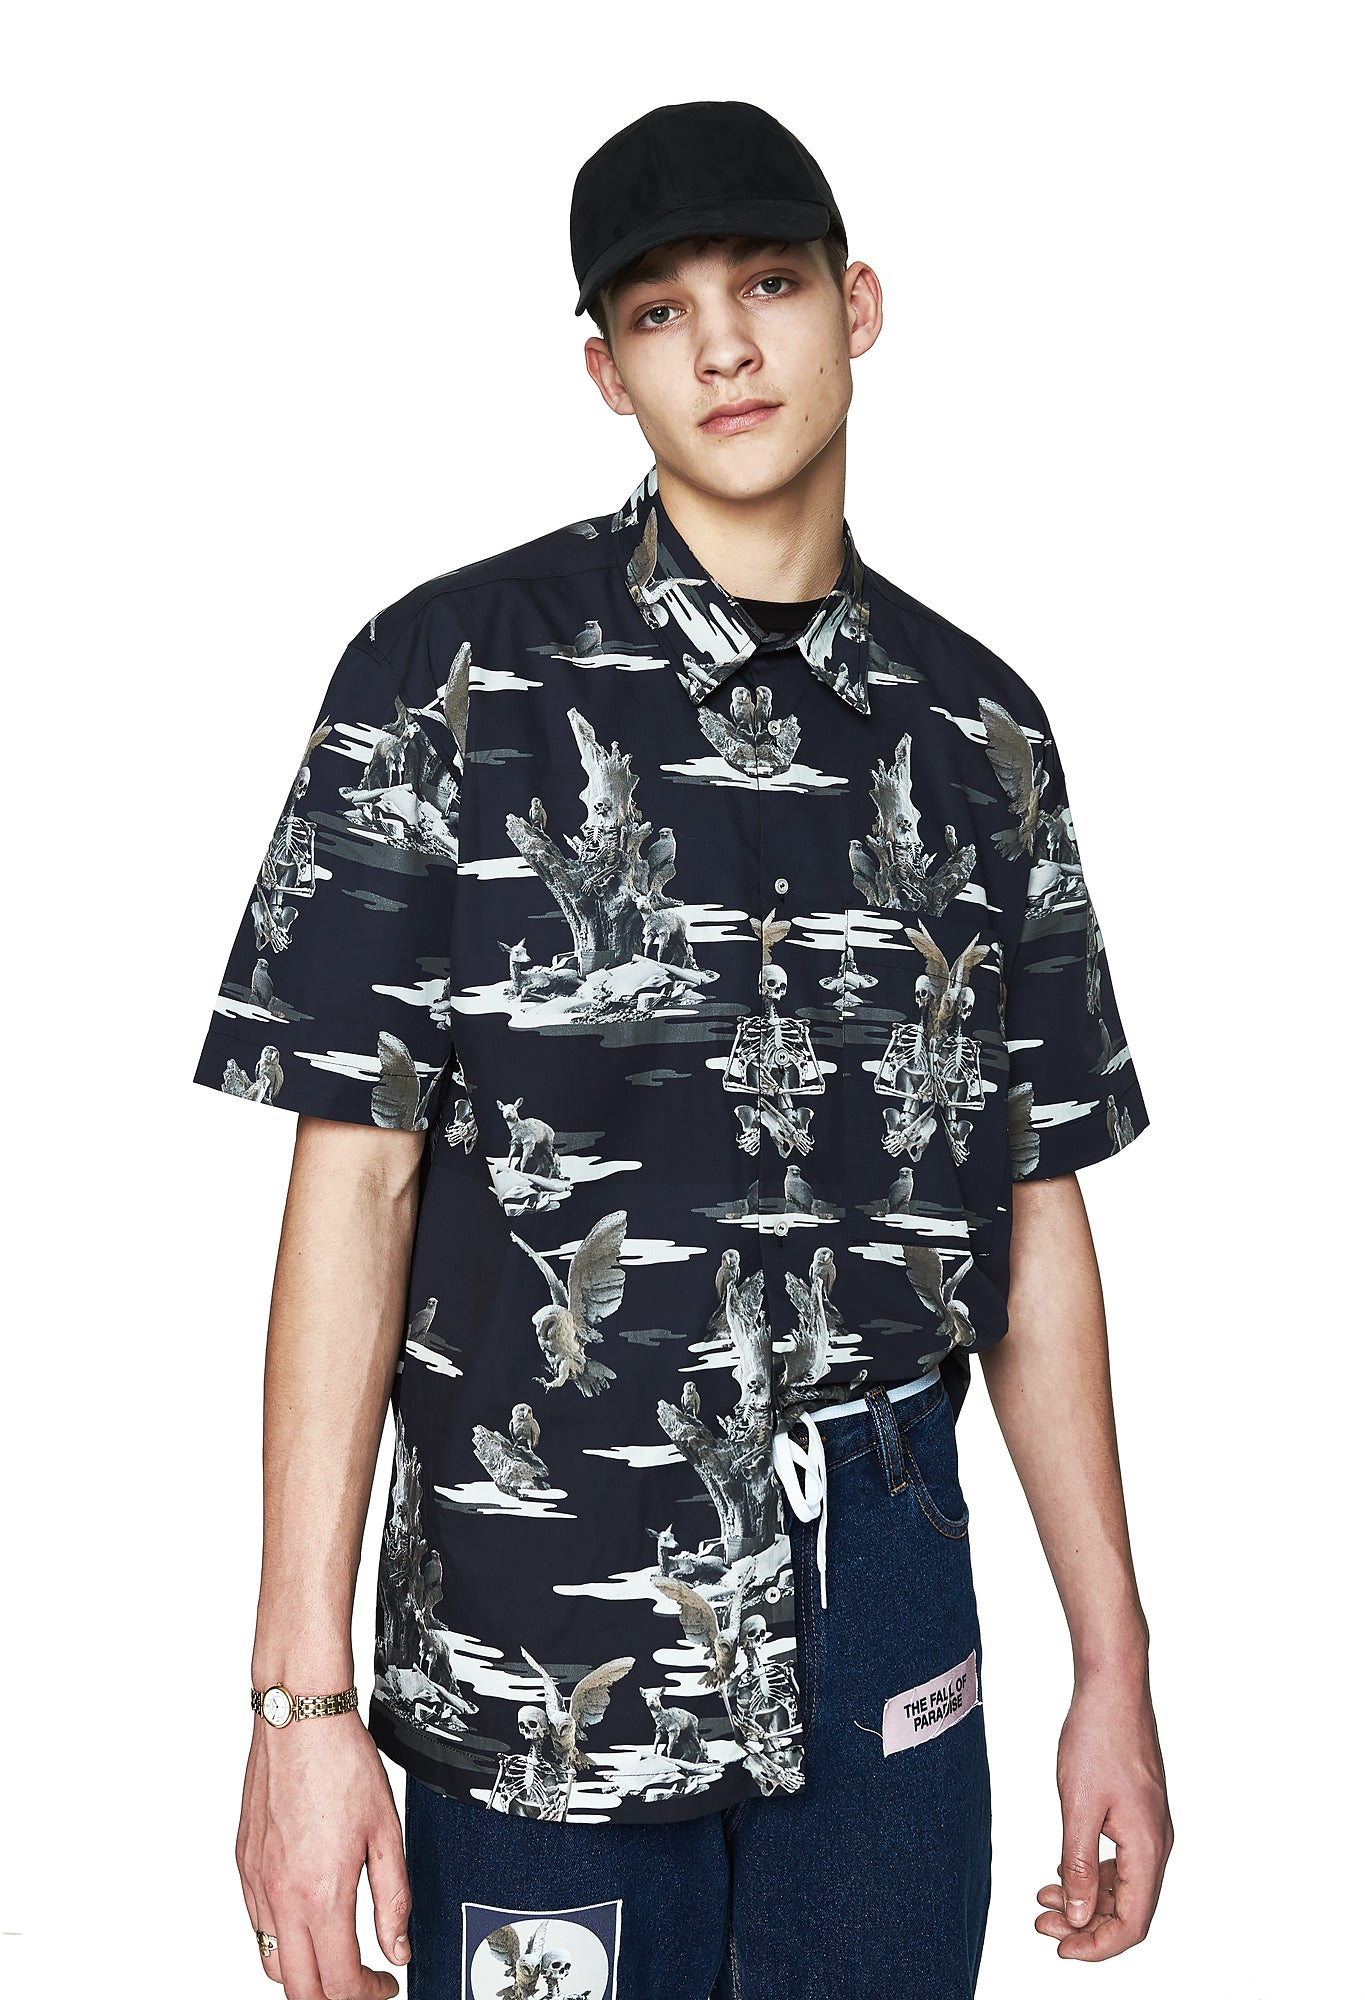 Paradise Camo Shirt - Men's Designer Brand - This Is Not Clothing - Lookbook Photo 5